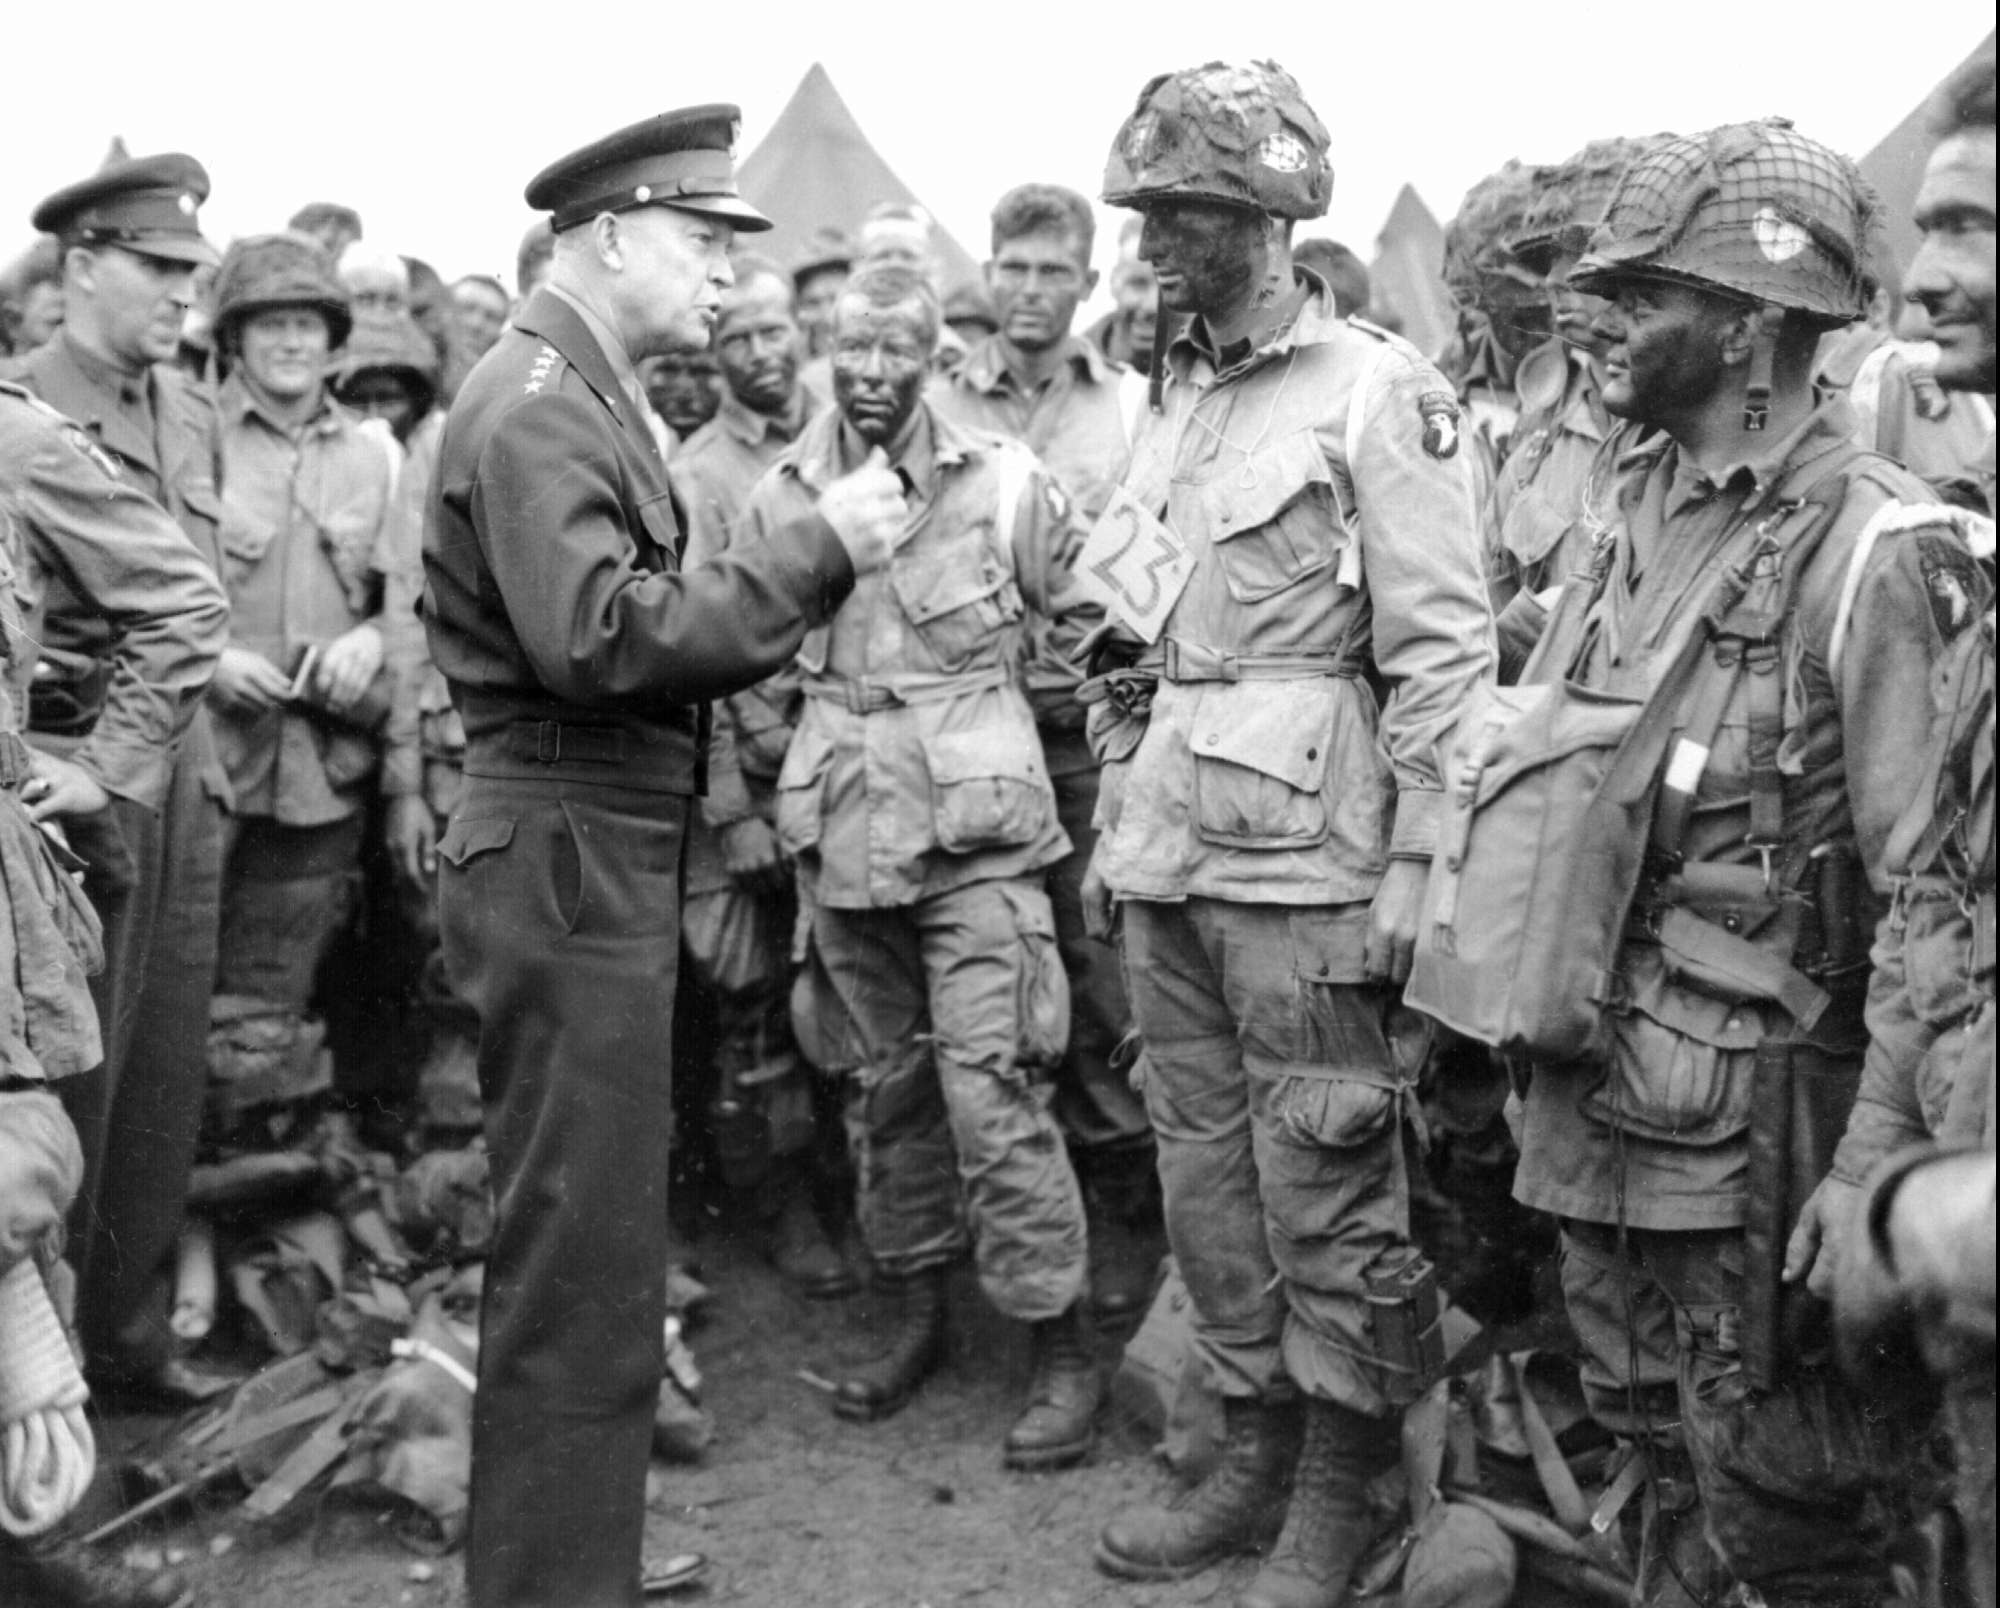 Gen. Dwight D. Eisenhower visits paratroopers on June 5, 1944, moments before the troops boarded transport planes bound for Normandy and the June 6 D-Day invasion. This photo became a pre-invasion classic. (AP Photo/File)